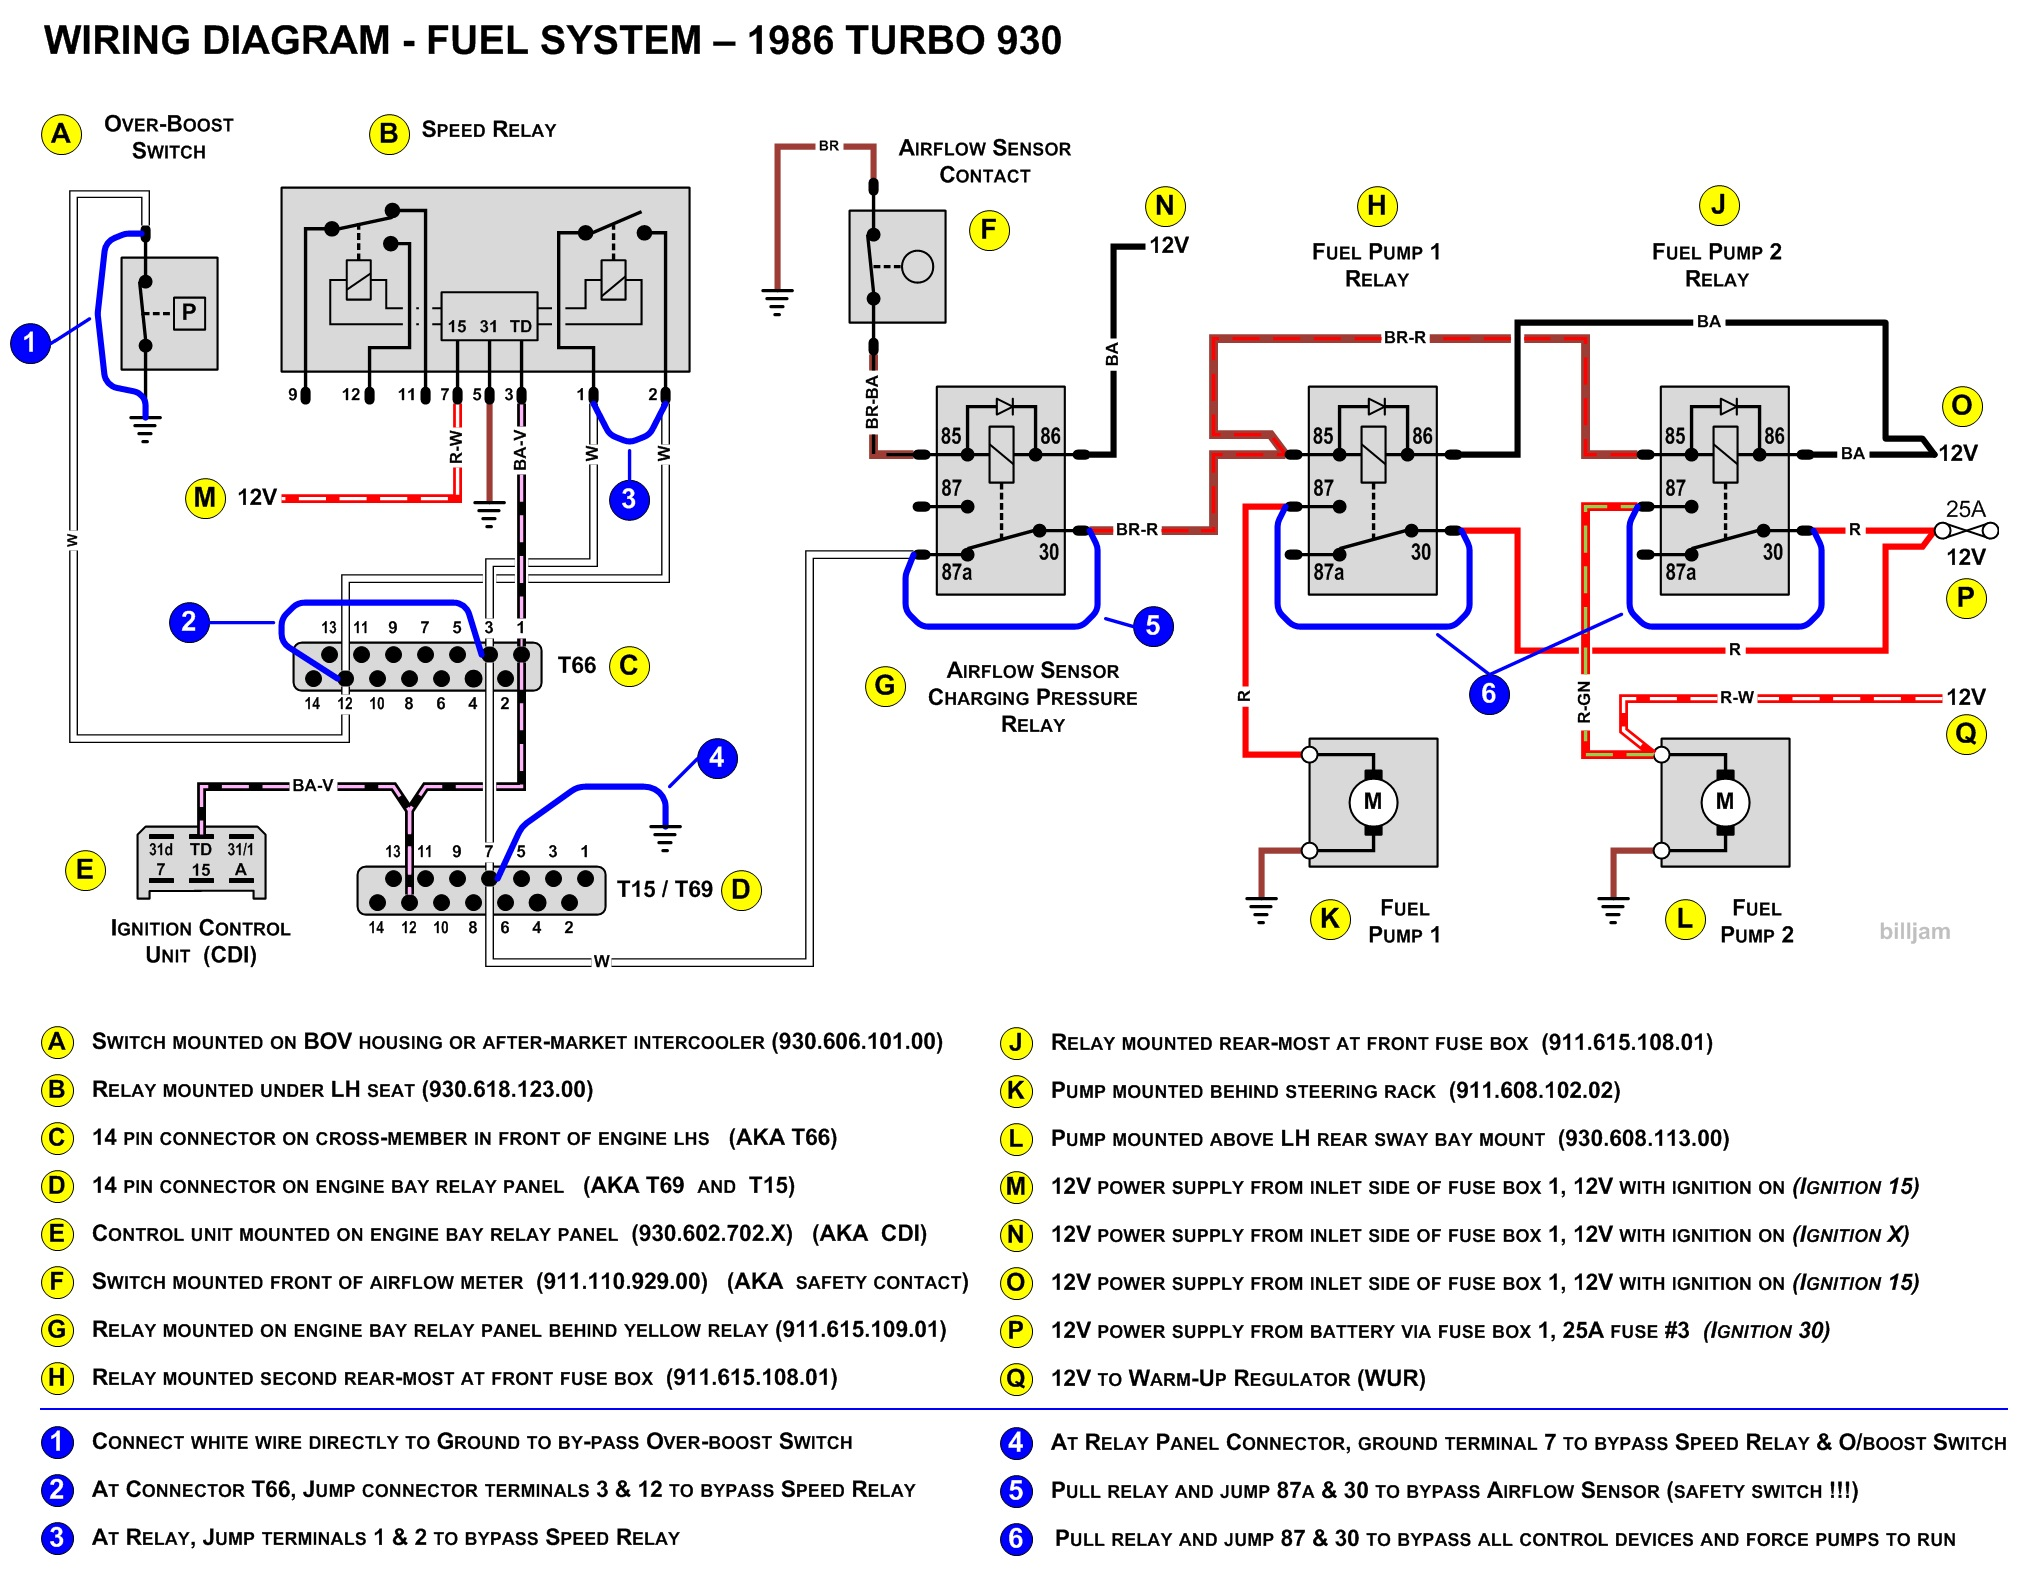 1988 Camaro Fuse Box Trusted Wiring Diagram 1986 Made A Label For My 88 Page 3 Pelican Parts Forums 2002 Mustang